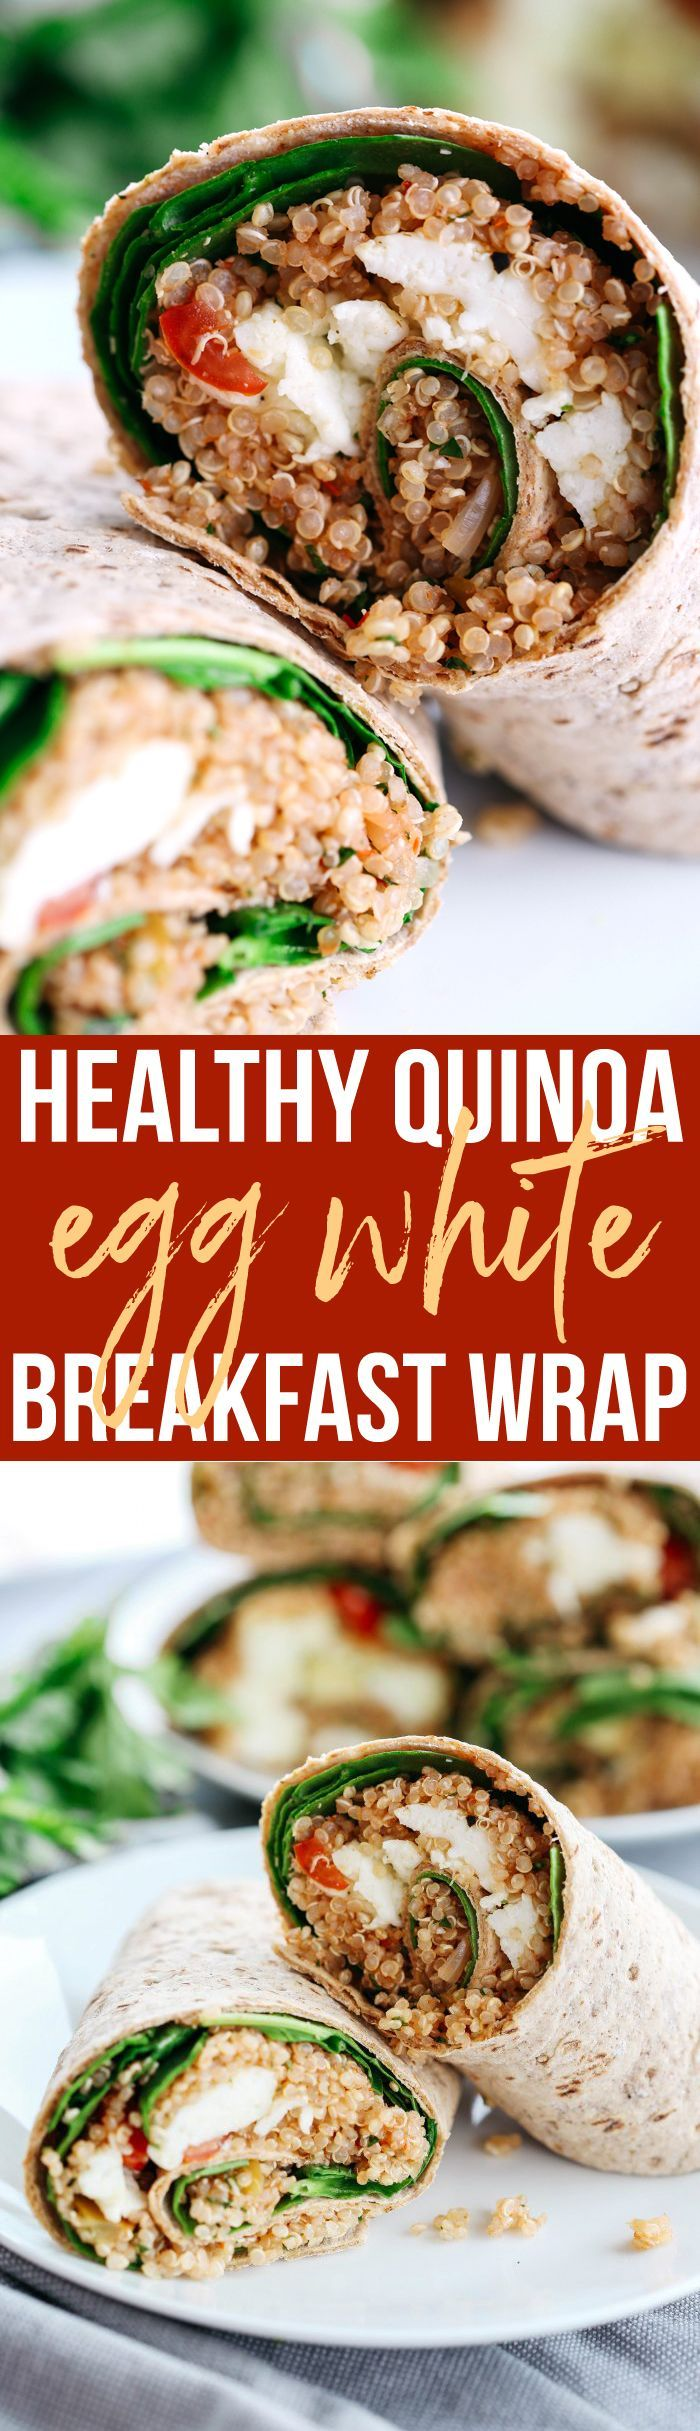 These Healthy Quinoa Egg White Breakfast Wraps are super easy to make, are packed with tons of protein and taste super flavorful! They're also perfect to grab on-the-go! /allwhiteseggs/ #allwhiteseggwhites #ad